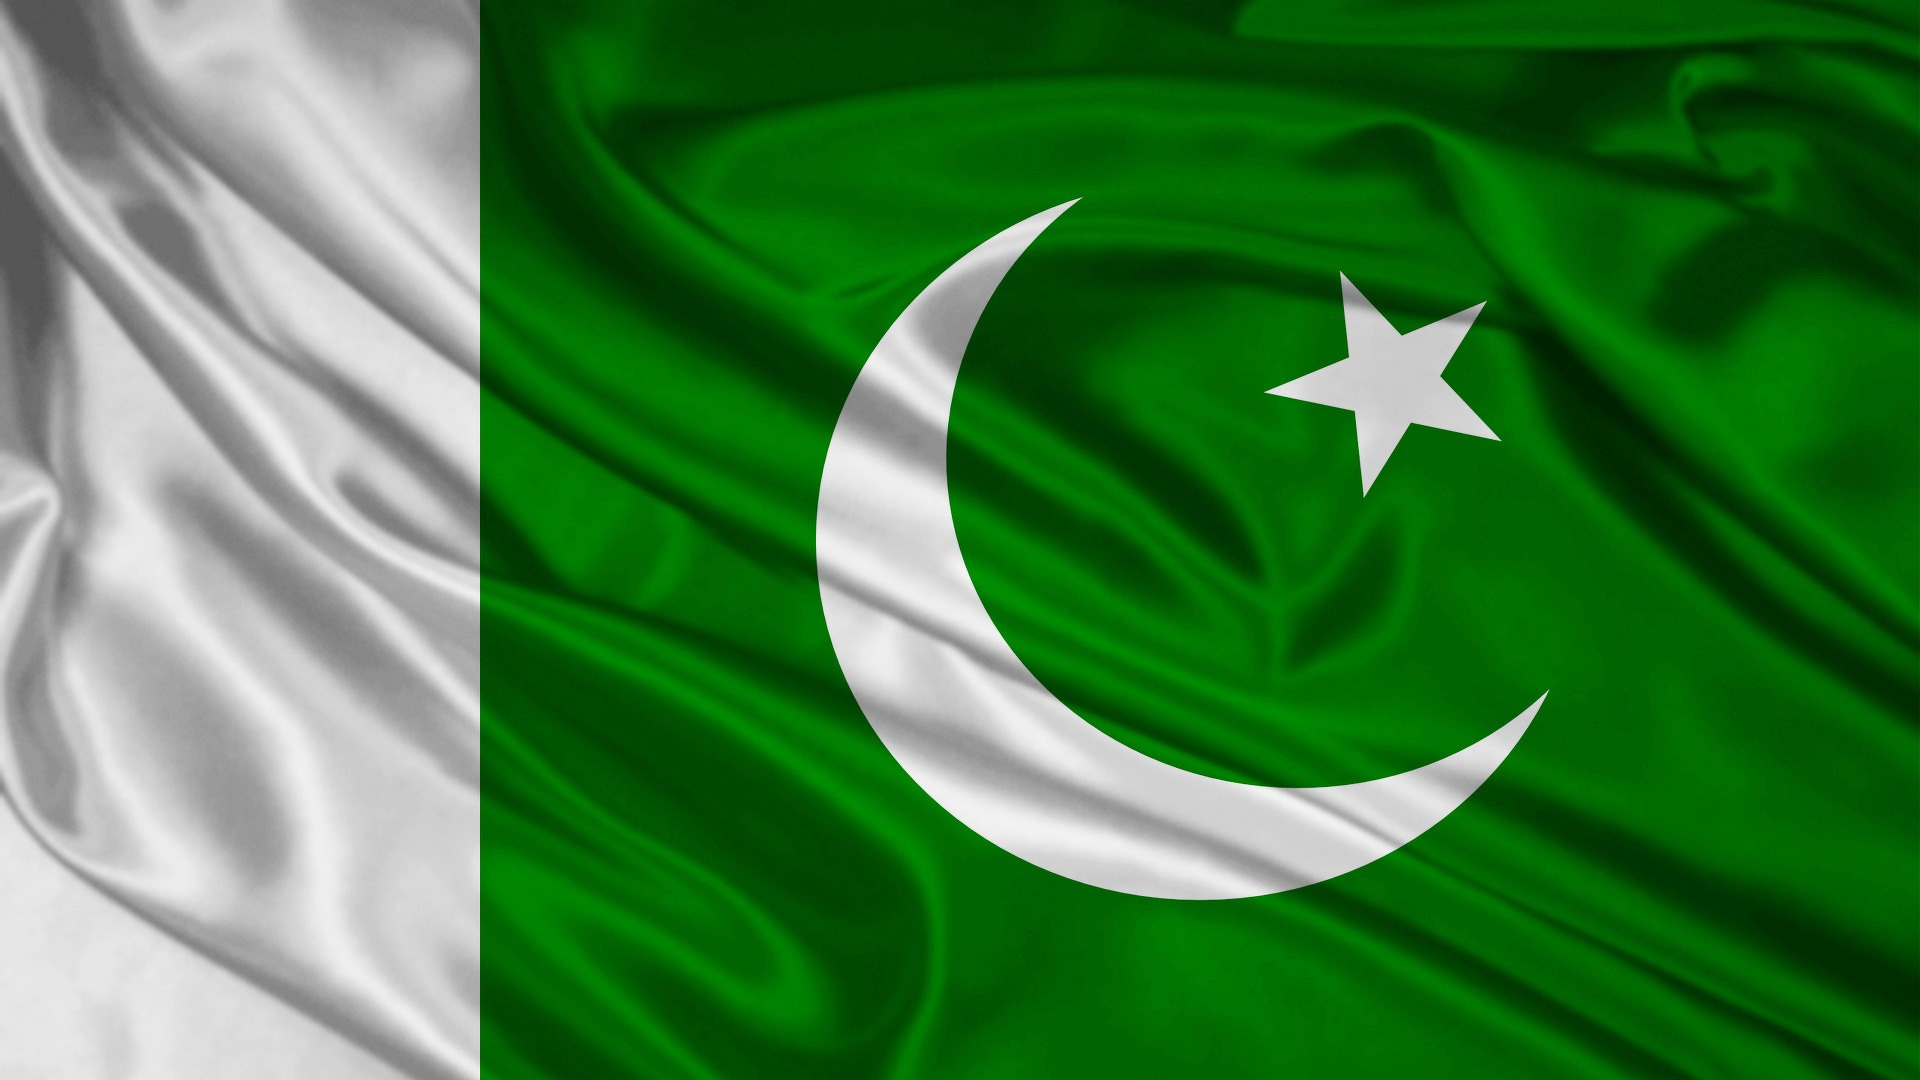 Pakistan enticing foreign automakers to compete with dominant Japanese